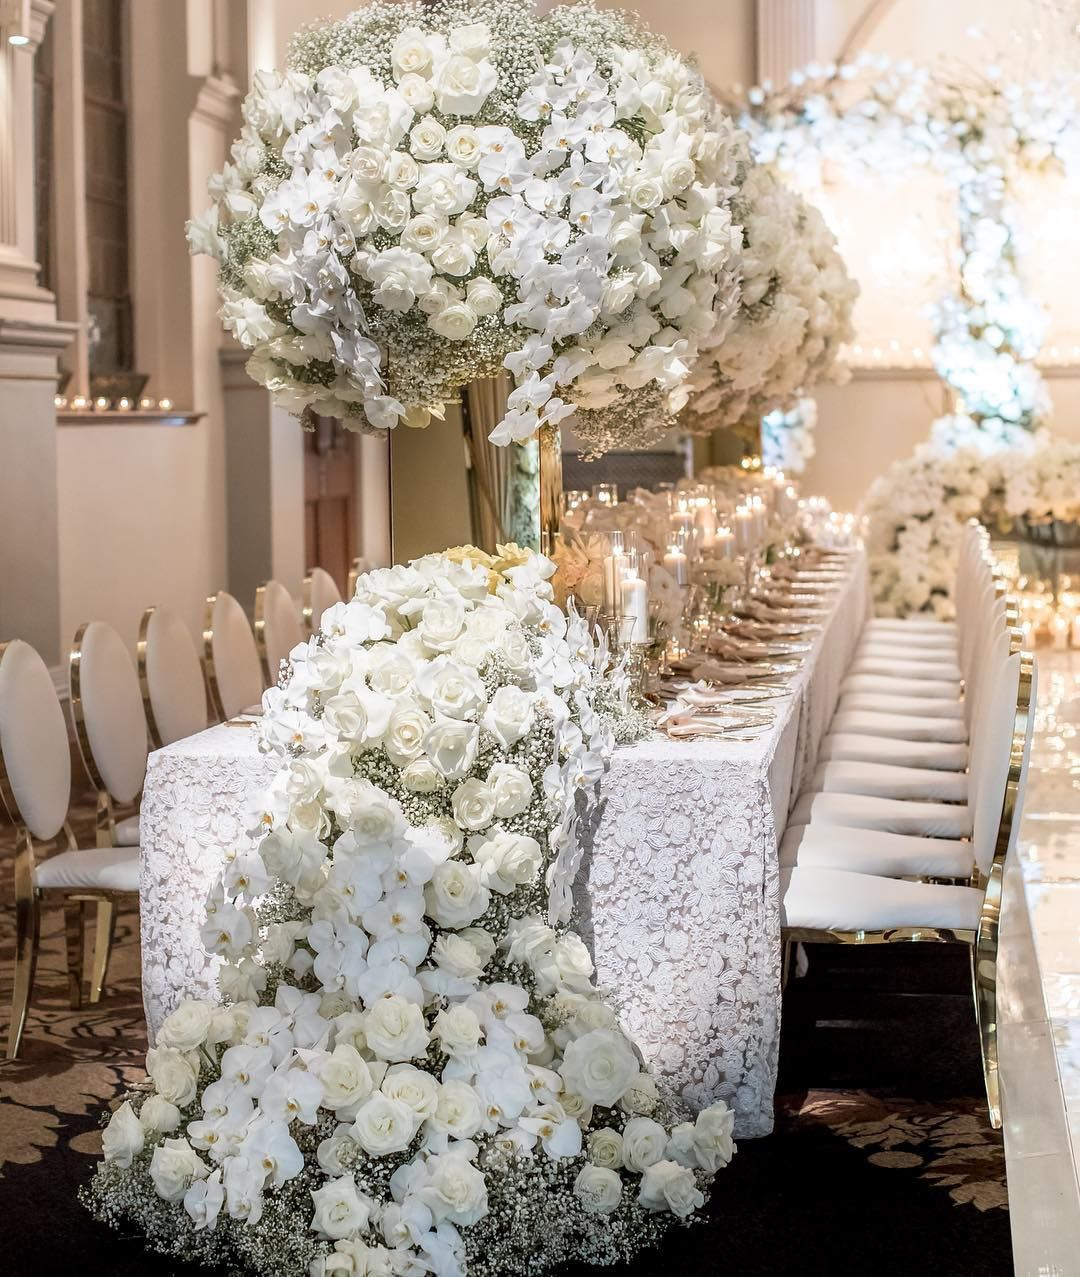 Luxury Wedding Floral Design With White Roses Orchids Baby S Breath Weddi Wedding Decor Inspiration Amazing Wedding Table Decorations Wedding Decorations